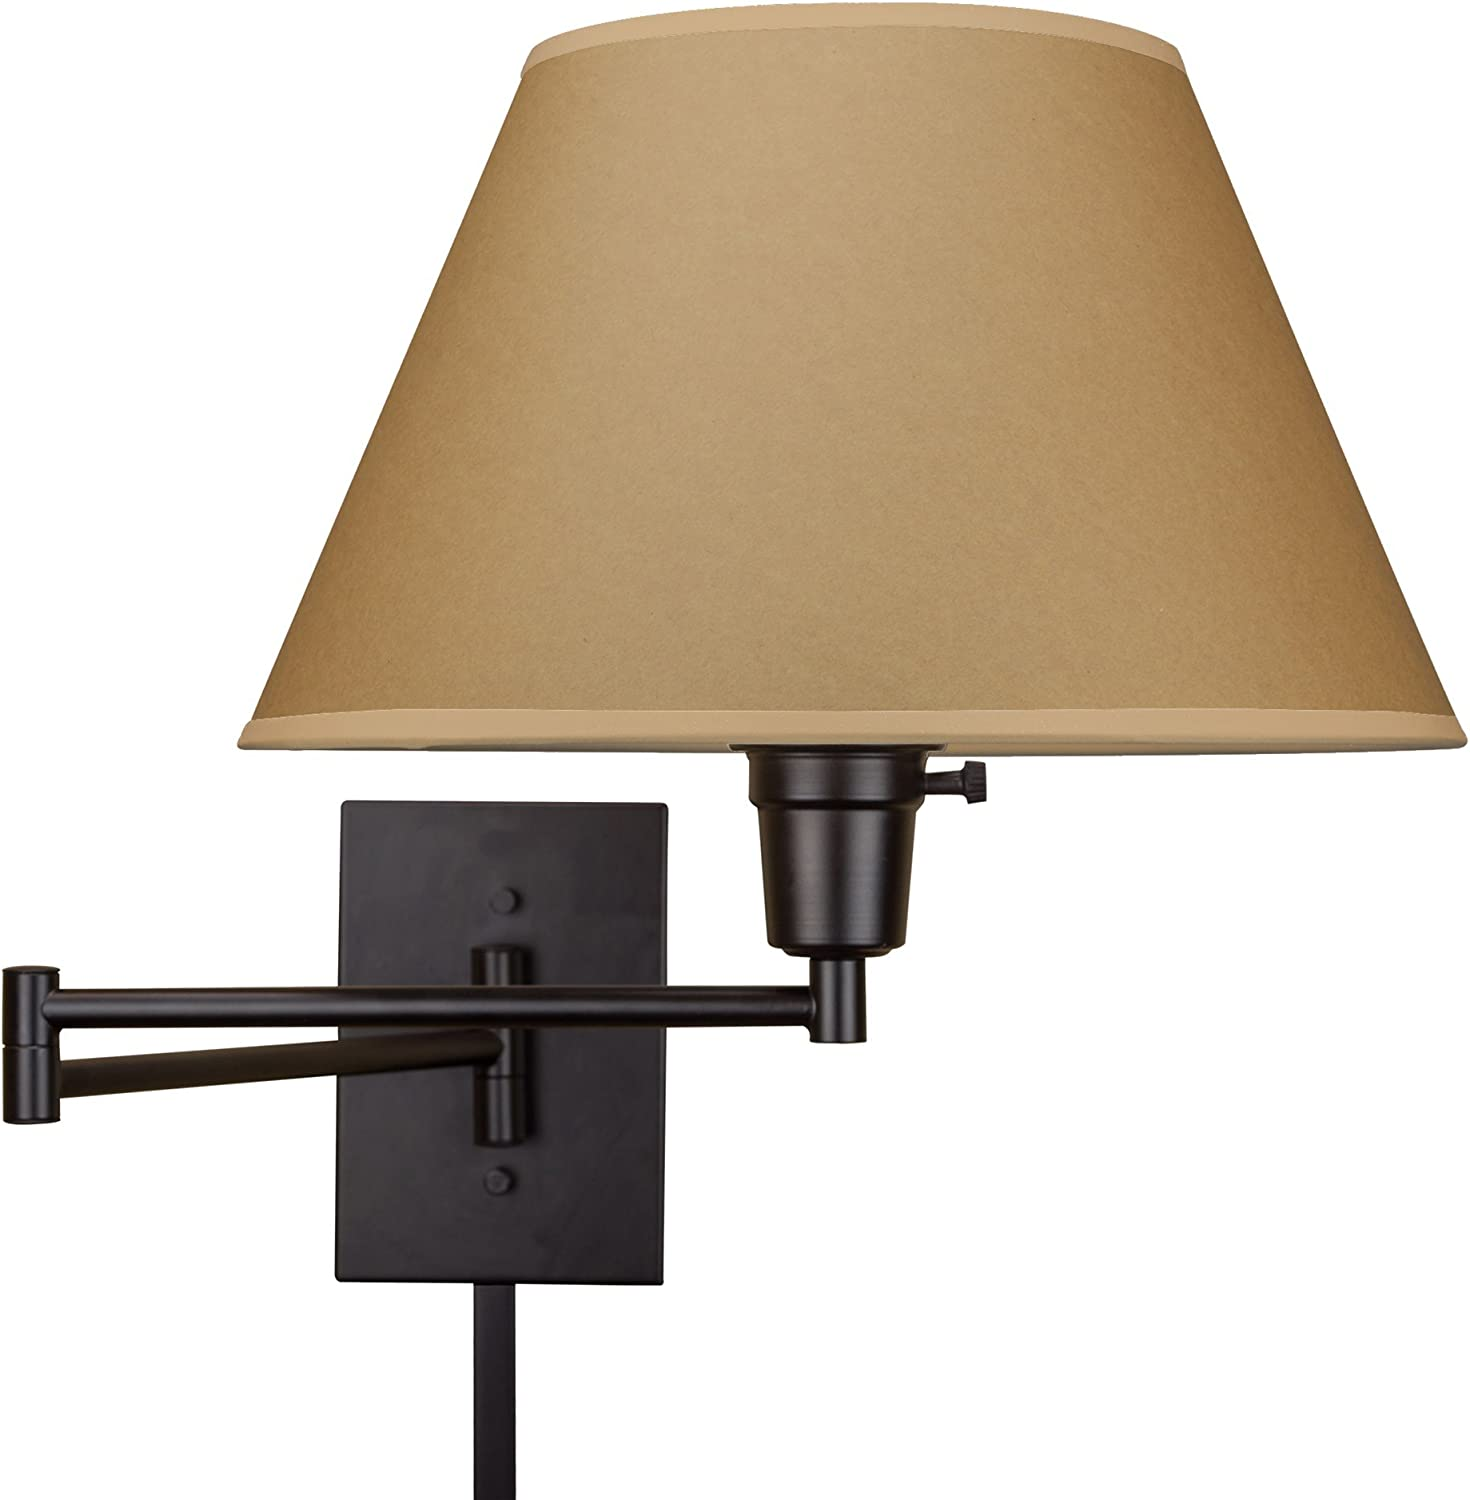 Kira Home Cambridge 13  Swing Arm Wall Lamp - Plug in Wall Mount, Opaque Paper Shade, 150W 3-Way + Cord Covers, Black Finish